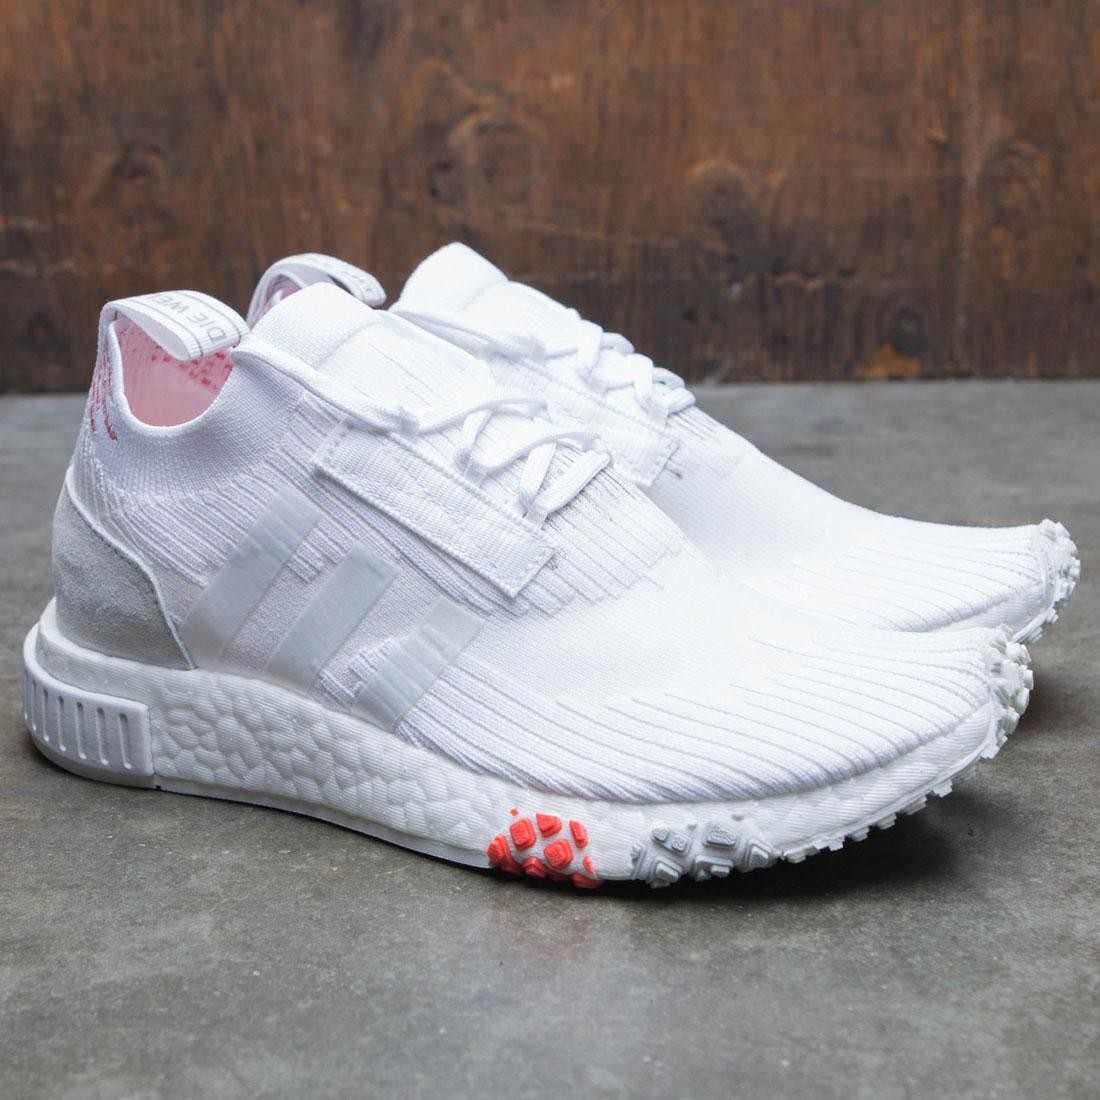 official photos 74b03 d5900 Adidas Women NMD Racer PK W (white / footwear white / trace scarlet)